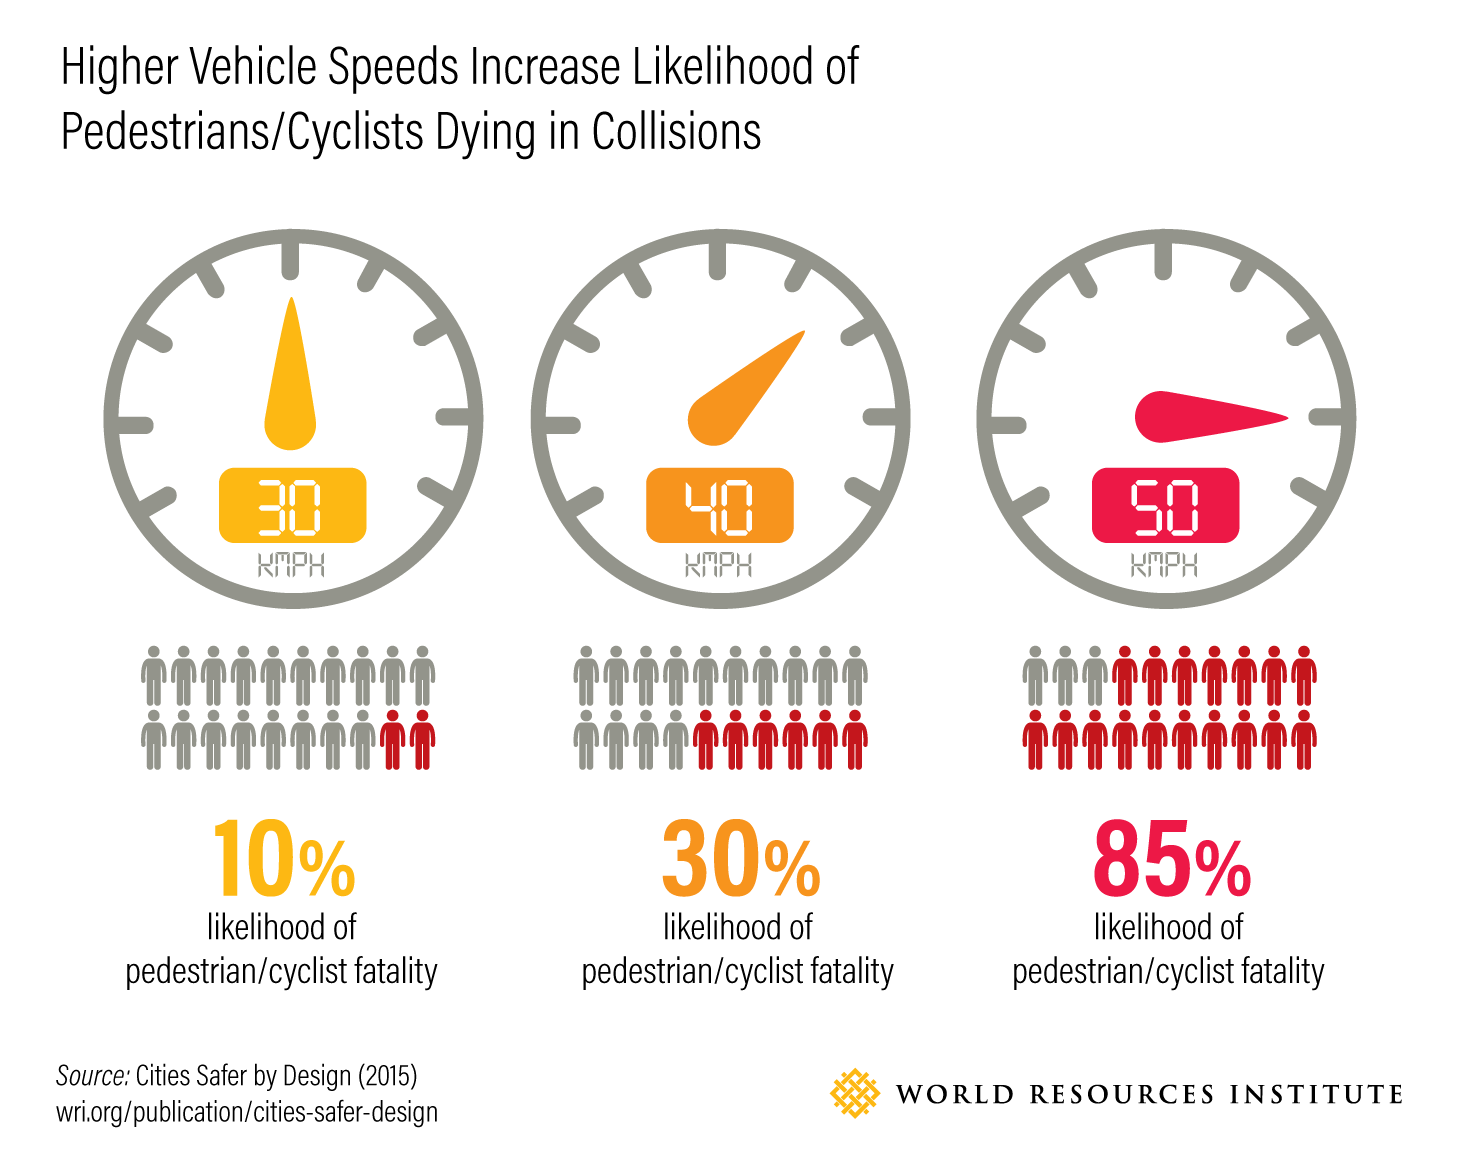 Higher Vehicle Speeds Increase Likelihood of Pedestrians/Cyclists Dying in Collisions